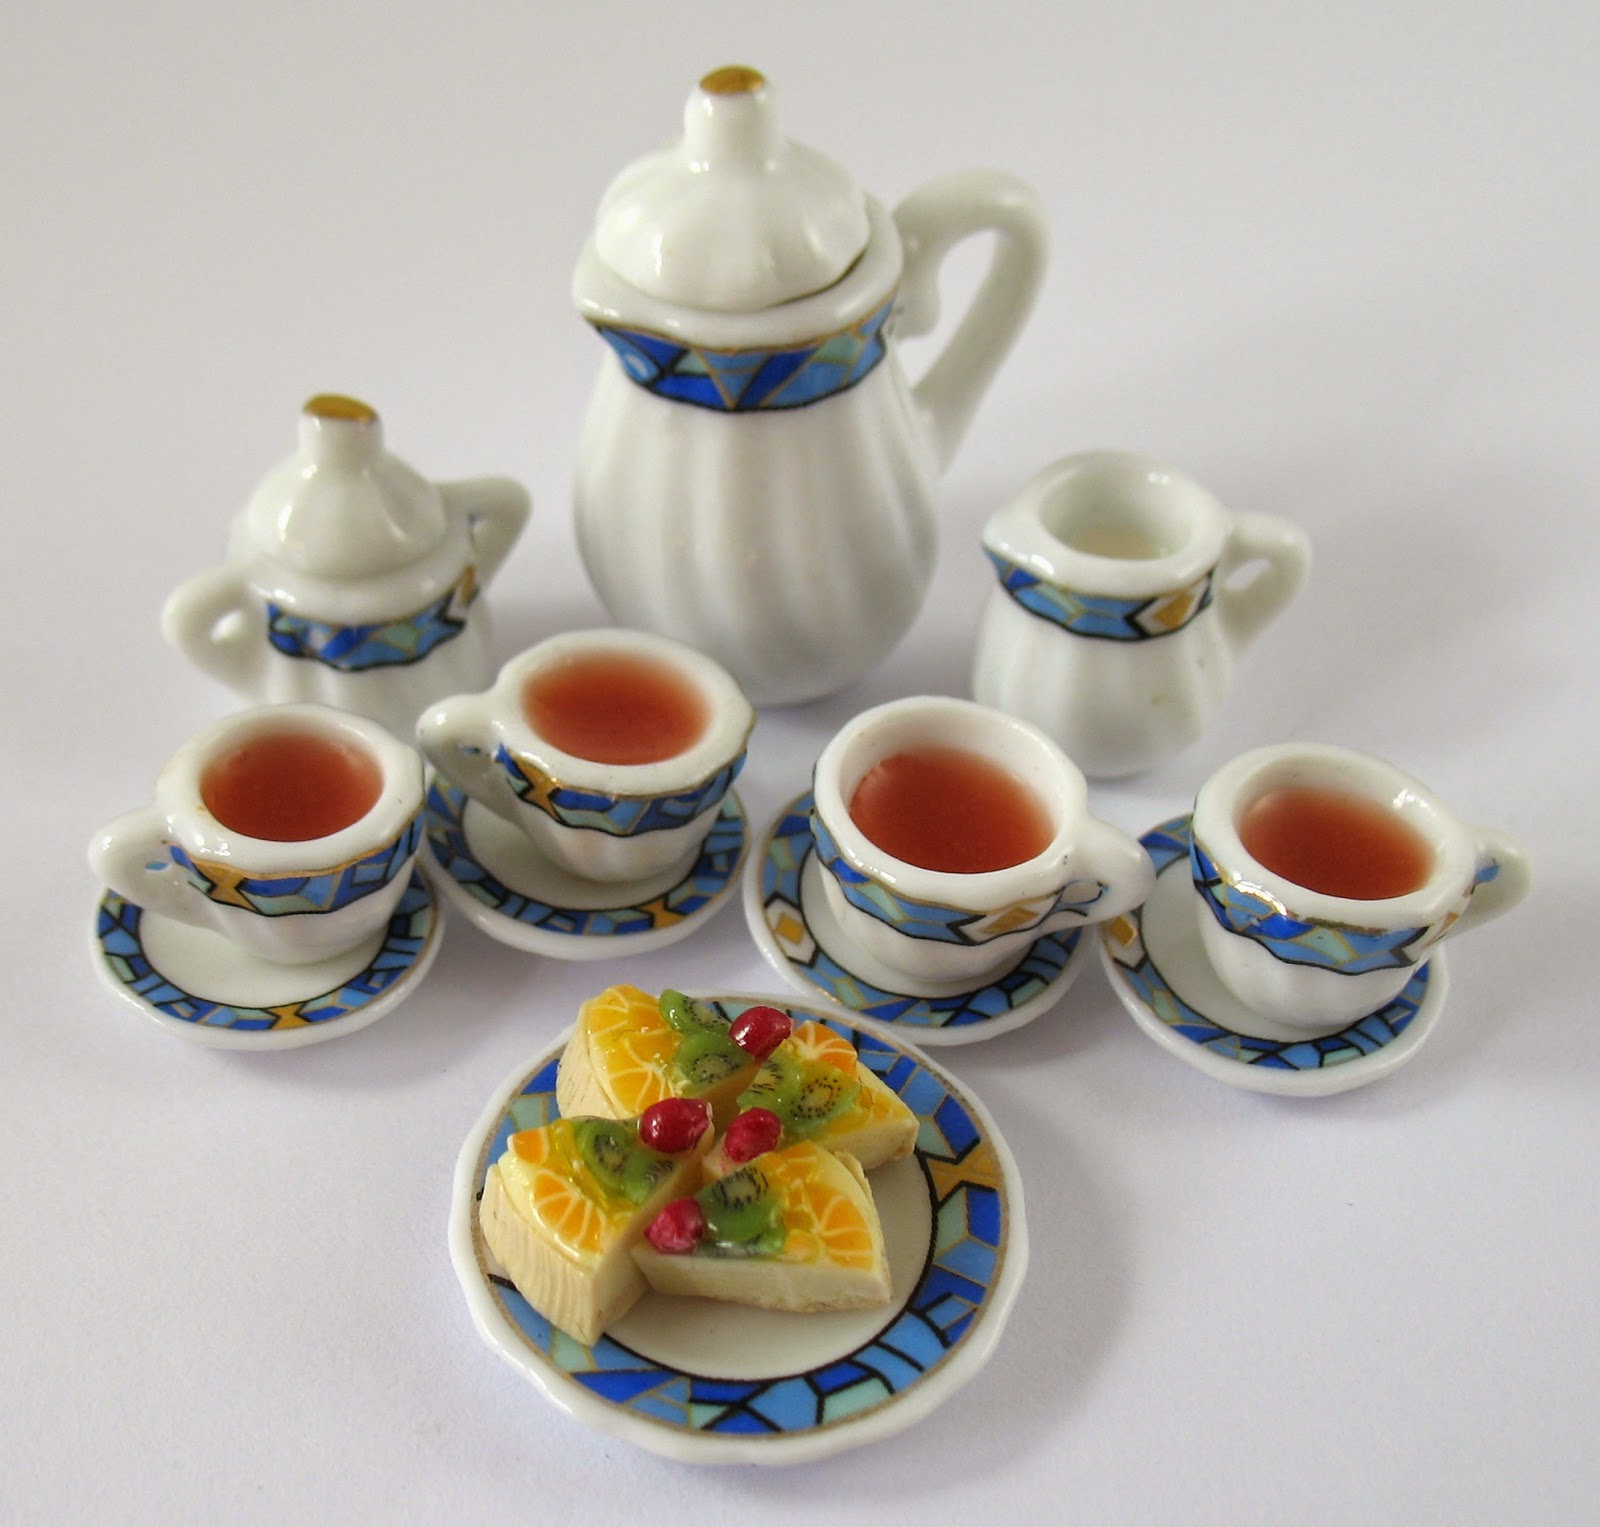 https://www.etsy.com/listing/83774855/dollhouse-miniature-food-tea-and?ref=shop_home_active_2